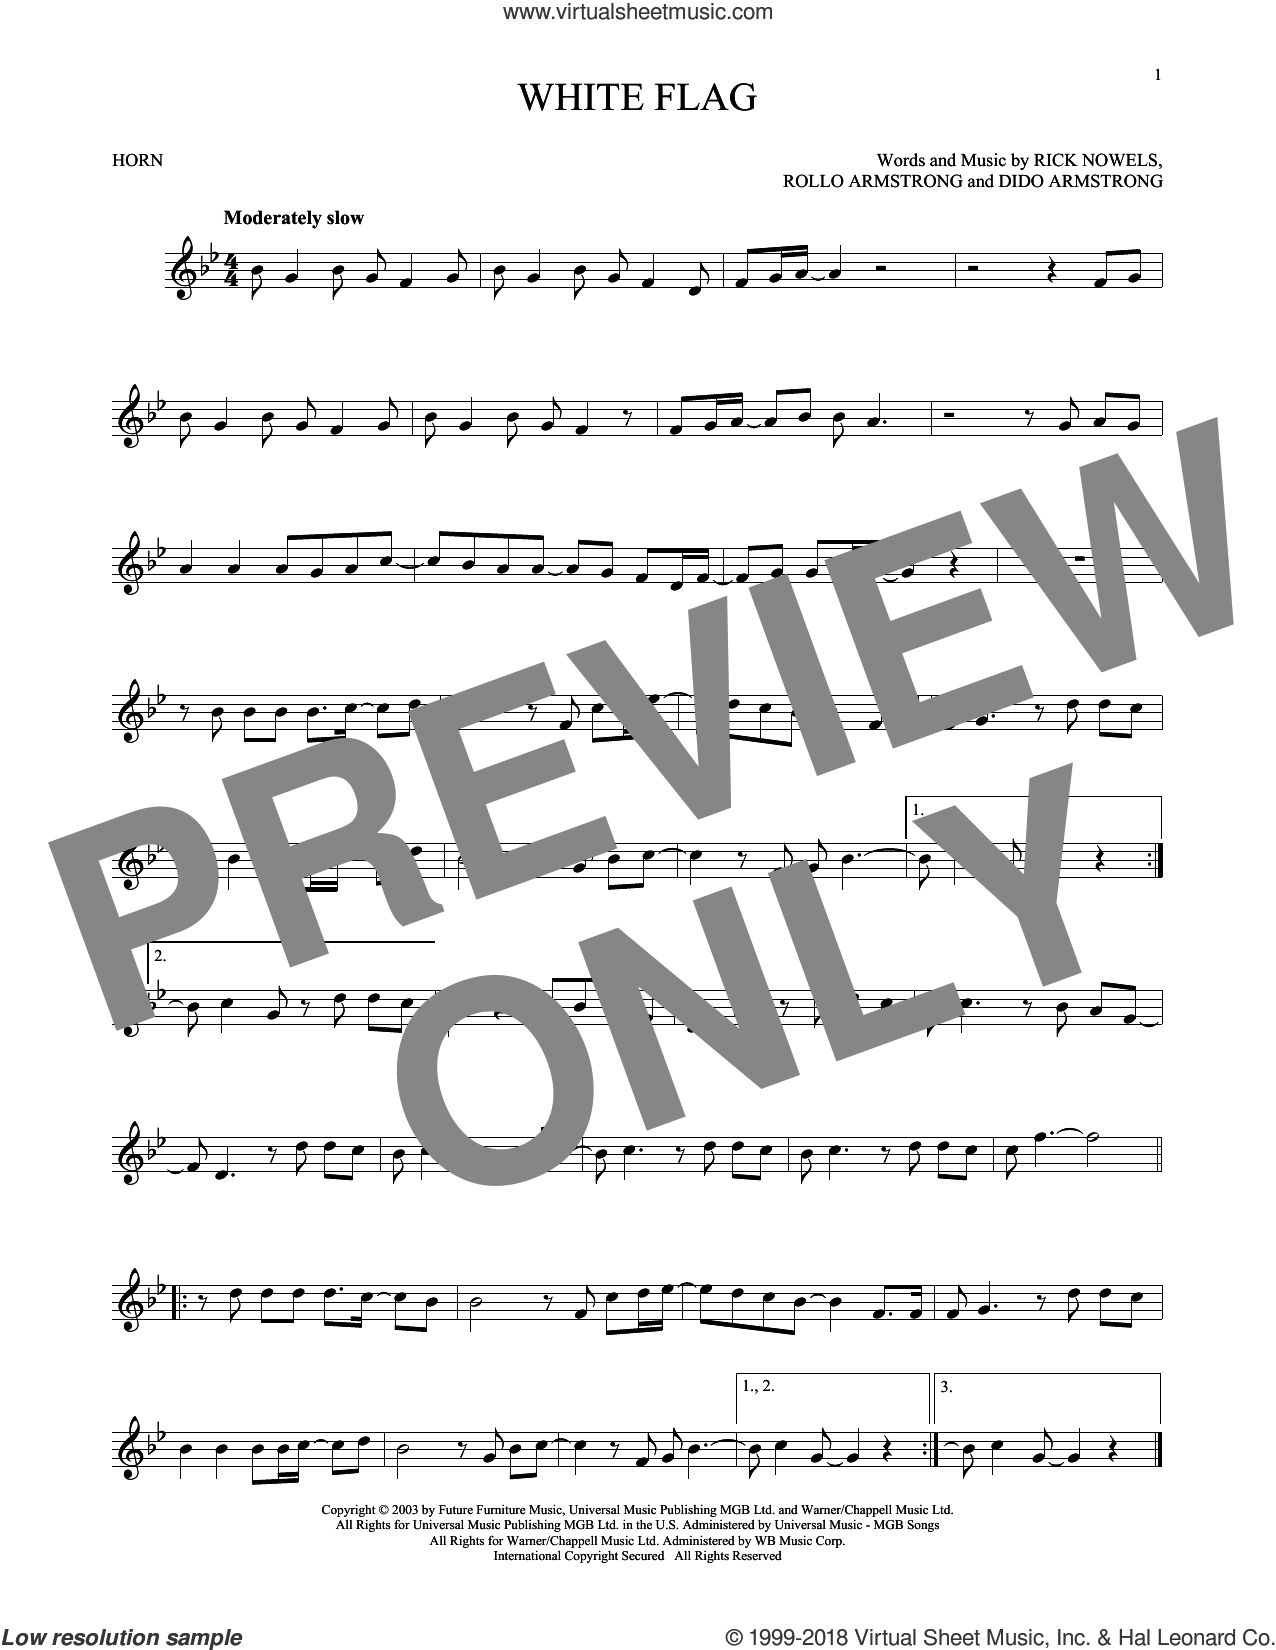 White Flag sheet music for horn solo by Rollo Armstrong, Dido Armstrong and Rick Nowels. Score Image Preview.